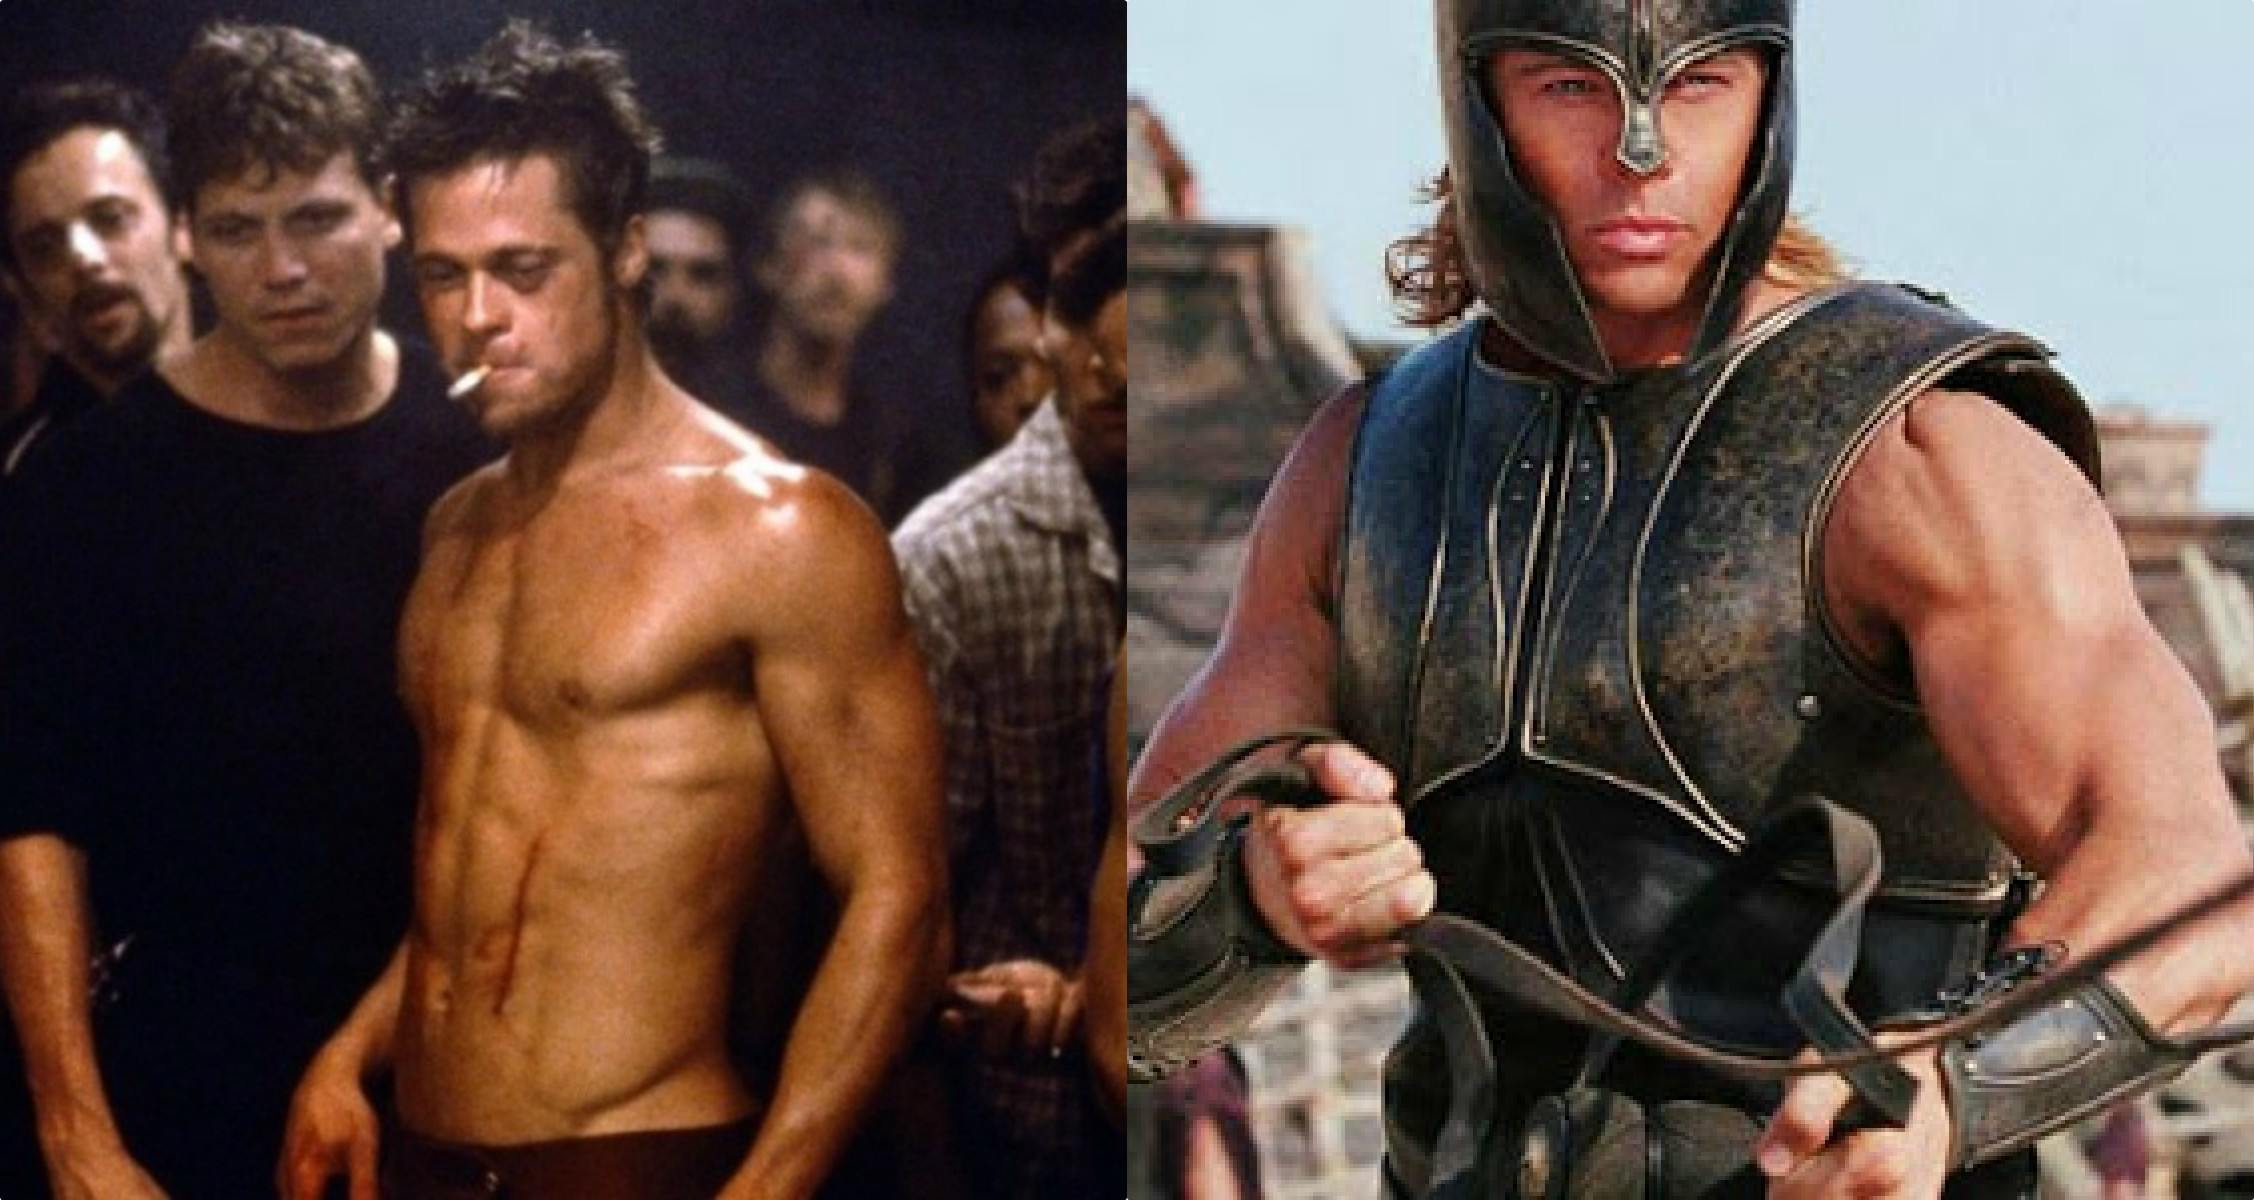 15 Actors Who Got in Amazing Shape for a Movie Role